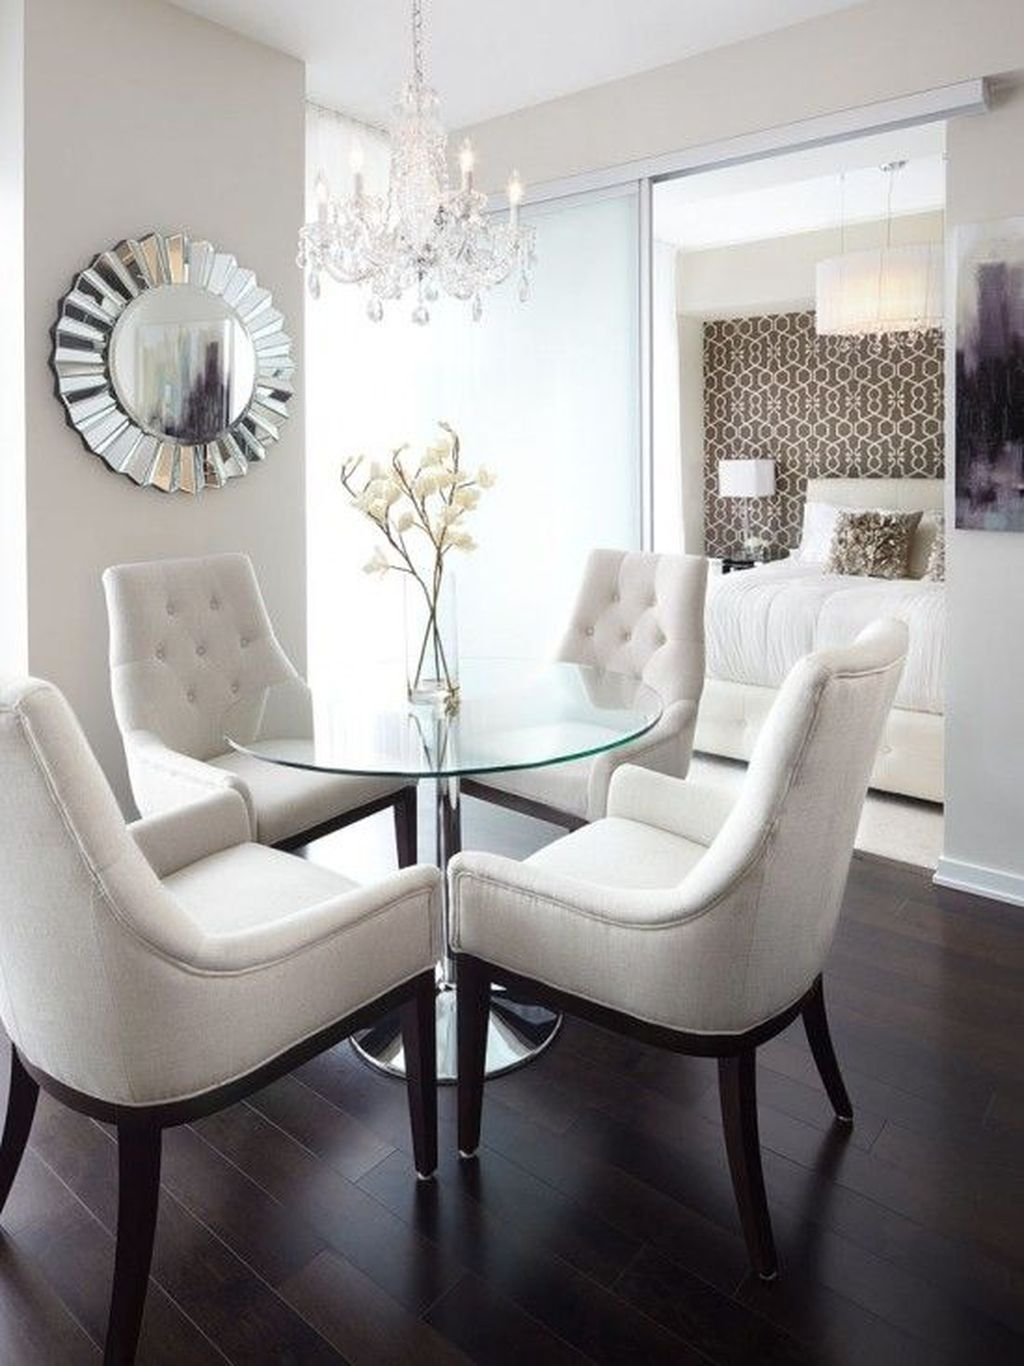 39 Cozy Dining Room Ideas for Small Space images